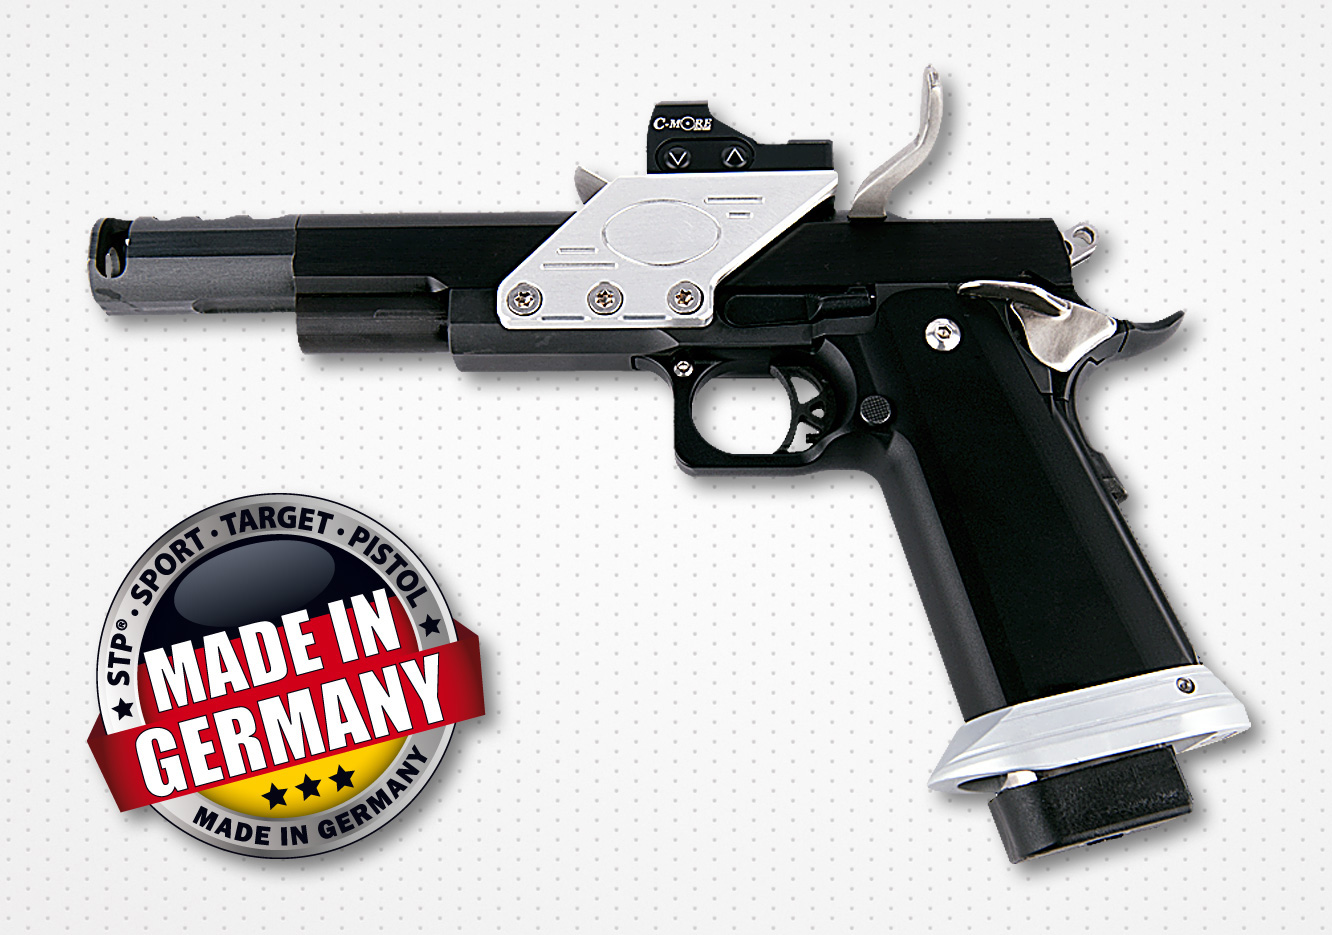 Mono Comp 4 15/5 0 · STP by Prommersberger · Premium weapons